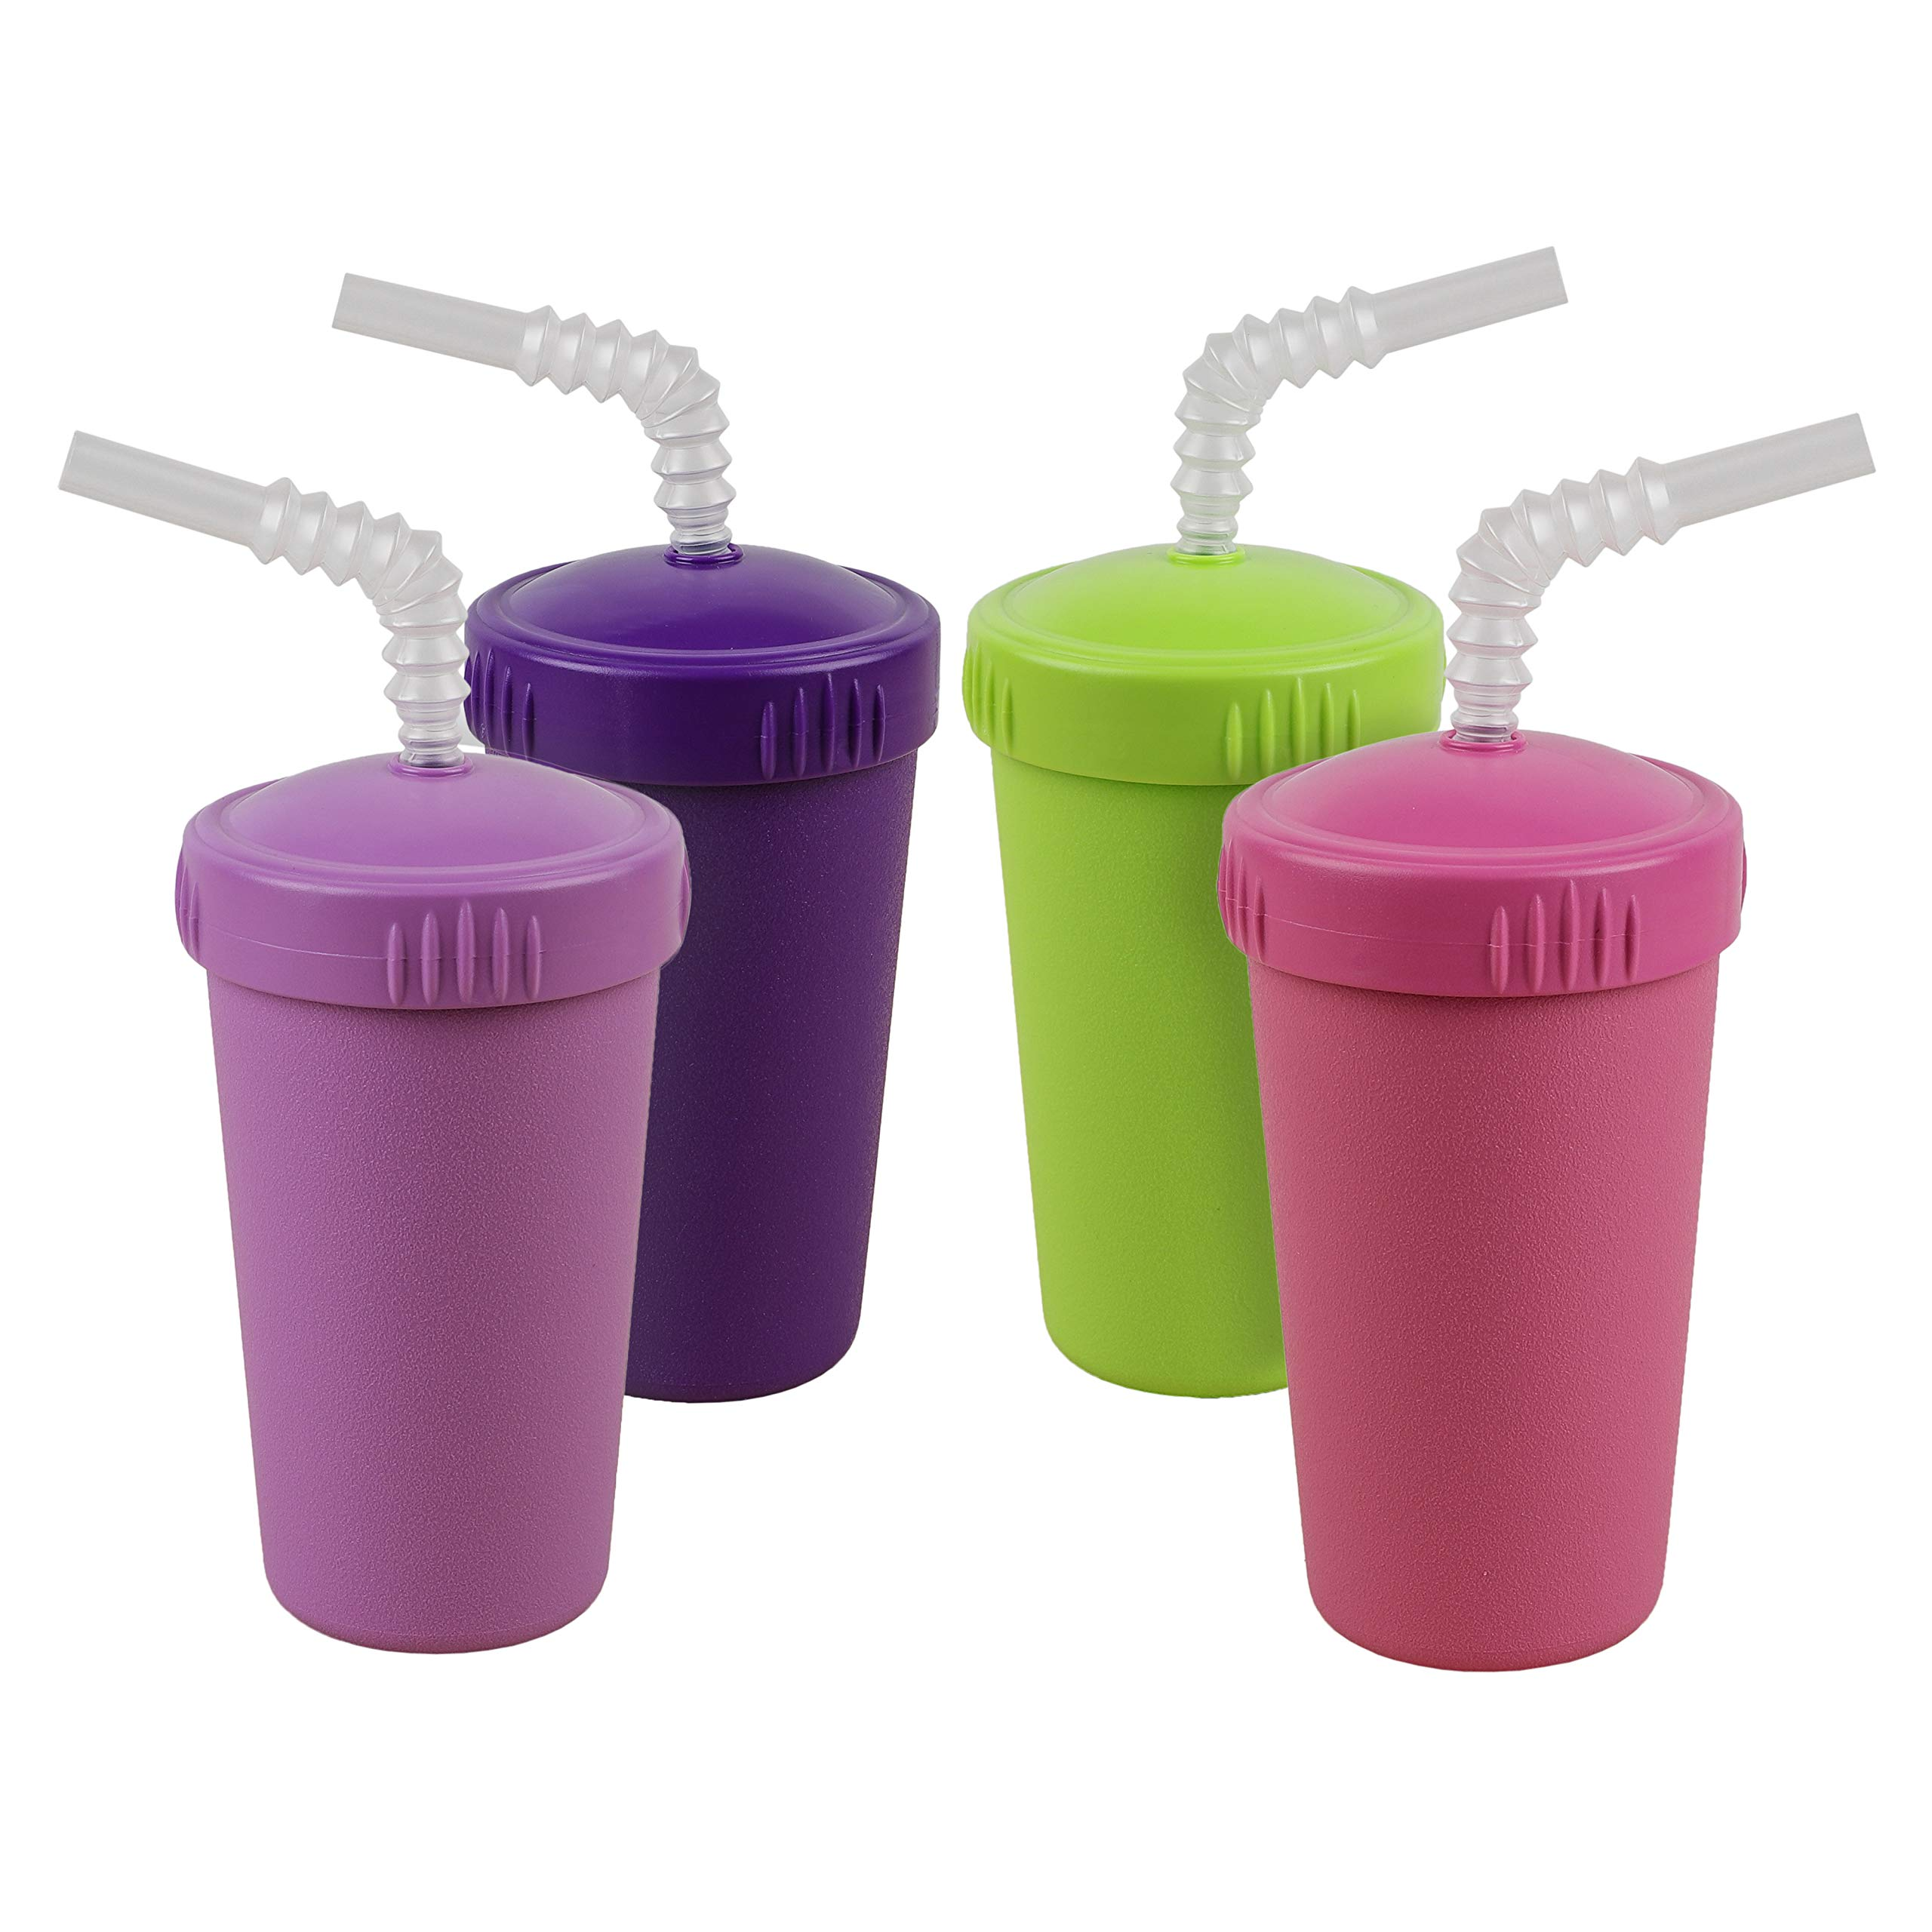 Re-Play Made in USA 4pk Straw Cups with Bendable Straw in Purple, Bright Pink, Lime Green and Amethyst | Made from Eco Friendly Heavyweight Recycled Milk Jugs - Virtually Indestructible (Butterfly+)